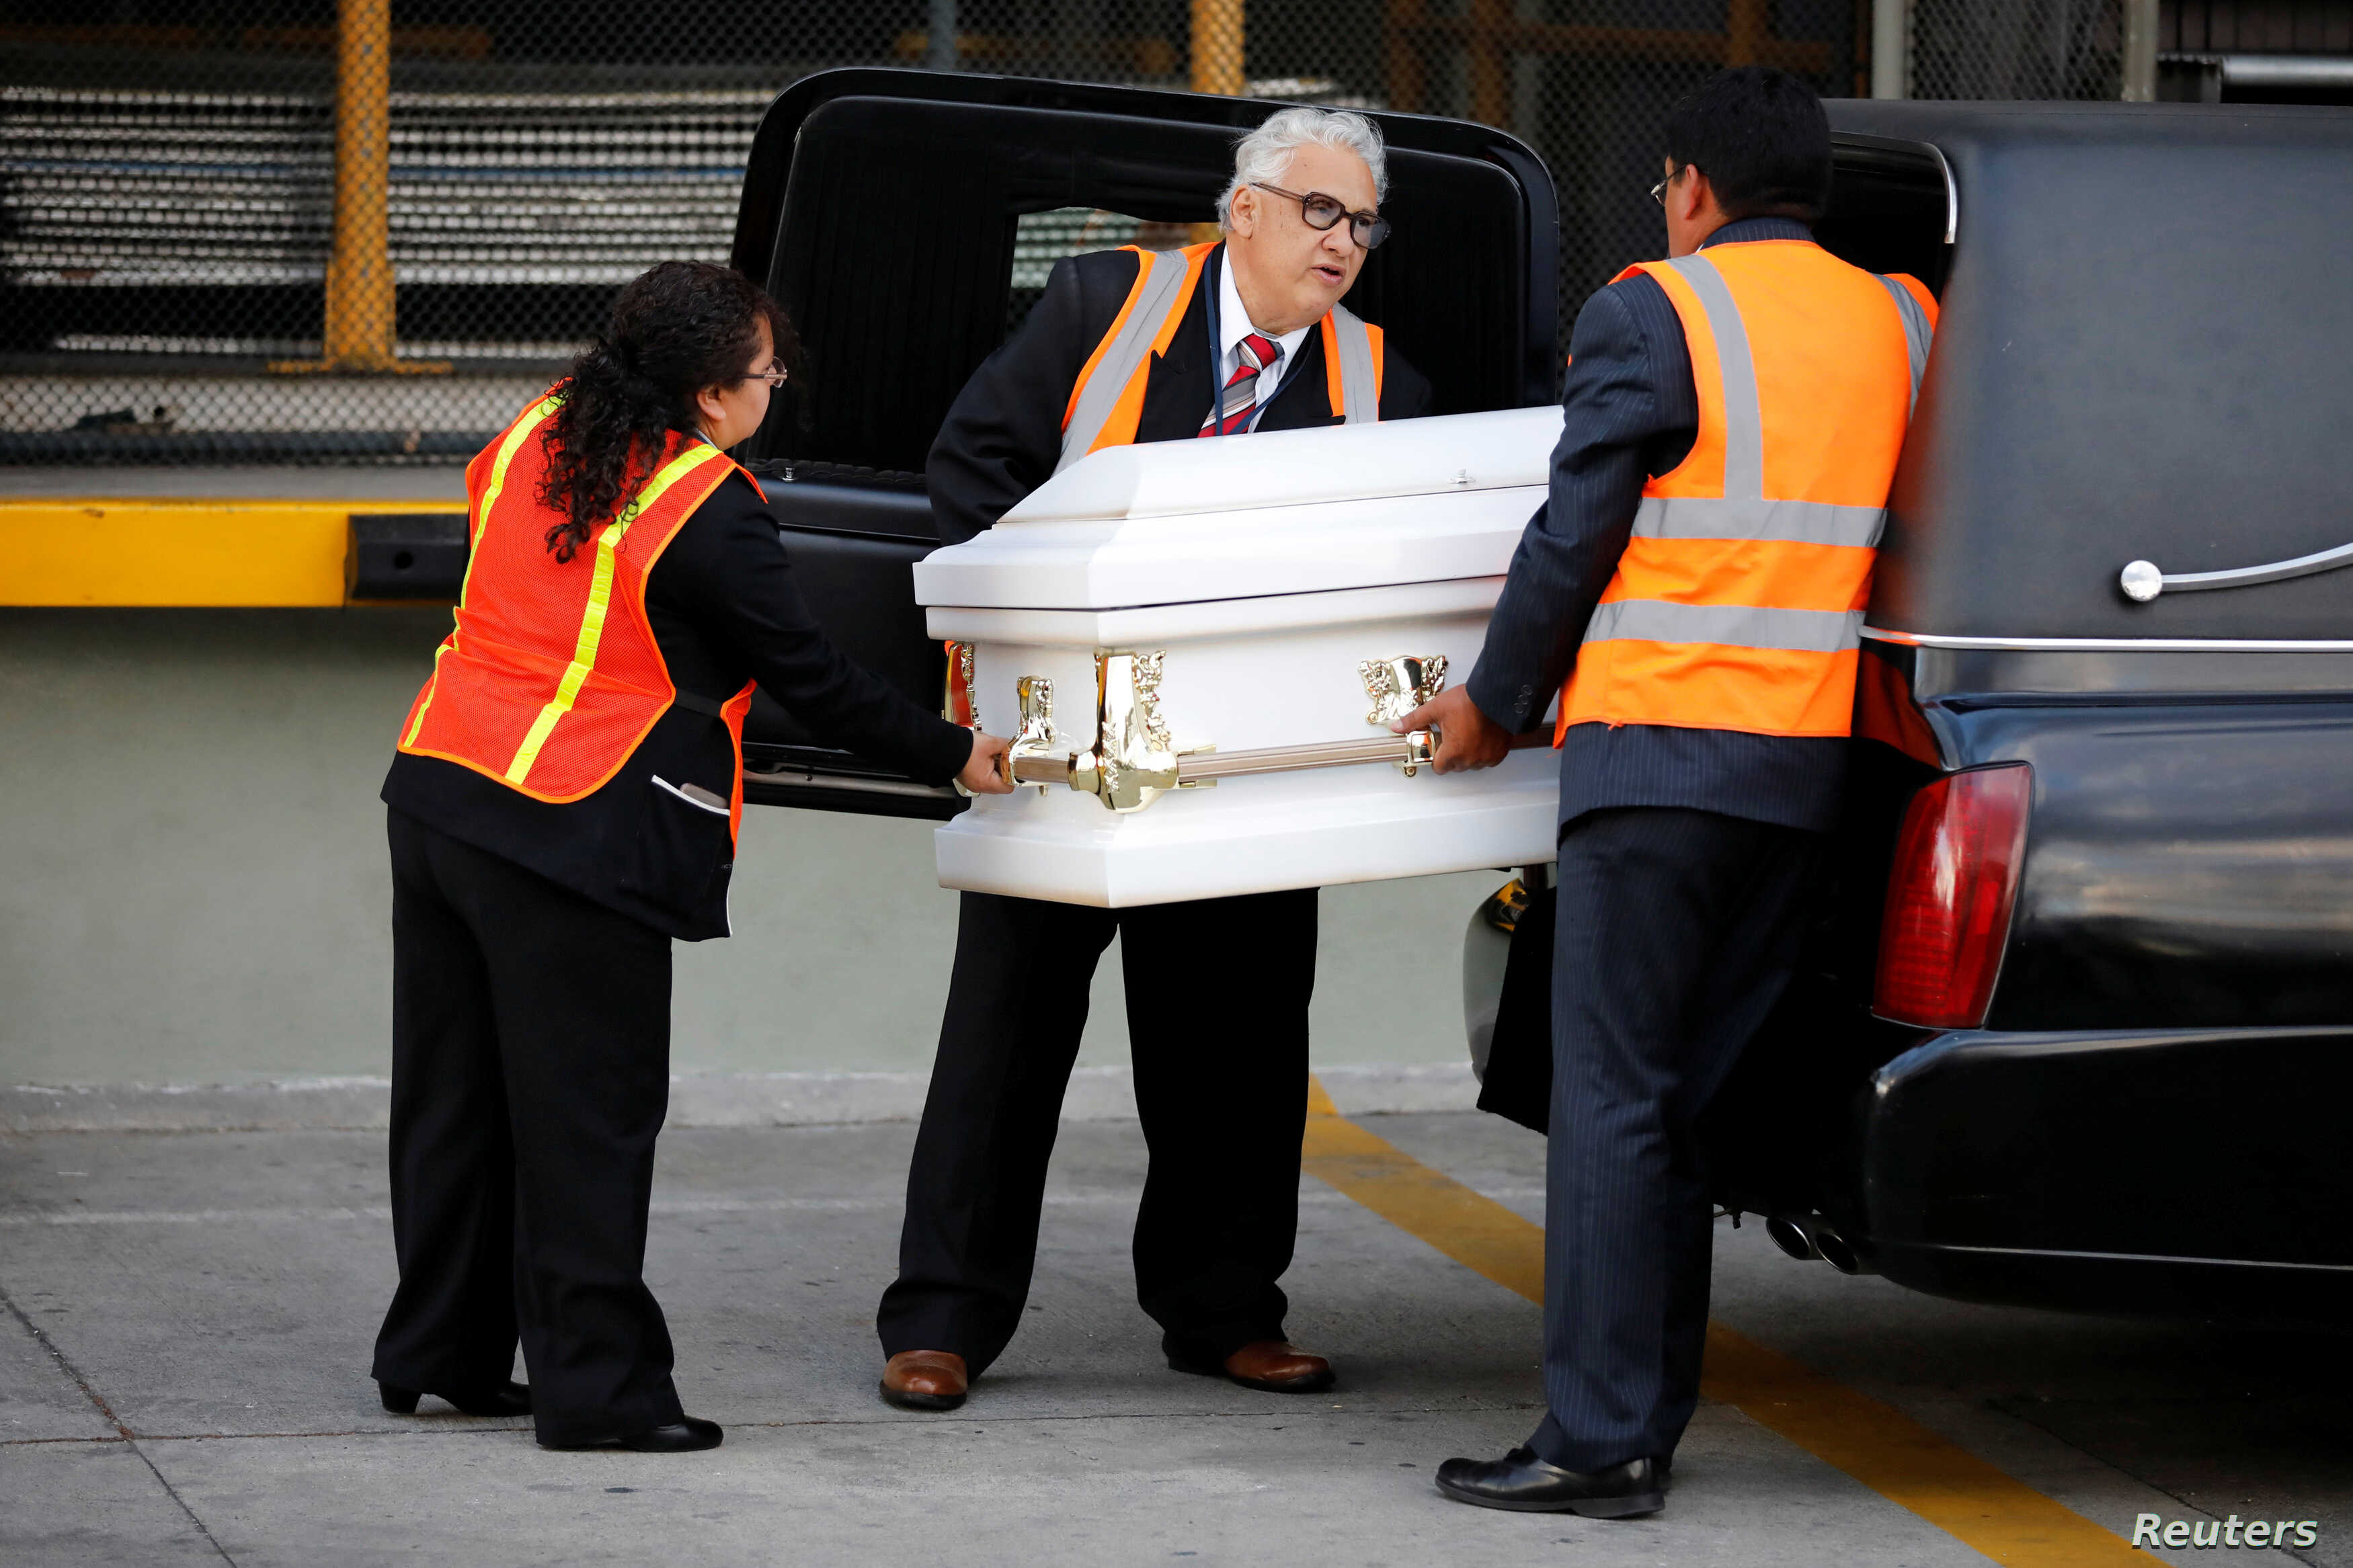 Staff of a funeral home receive the coffin containing the body of Jakelin Caal before her funeral, at La Aurora International Airport in Guatemala City, Guatemala, Dec. 23, 2018.